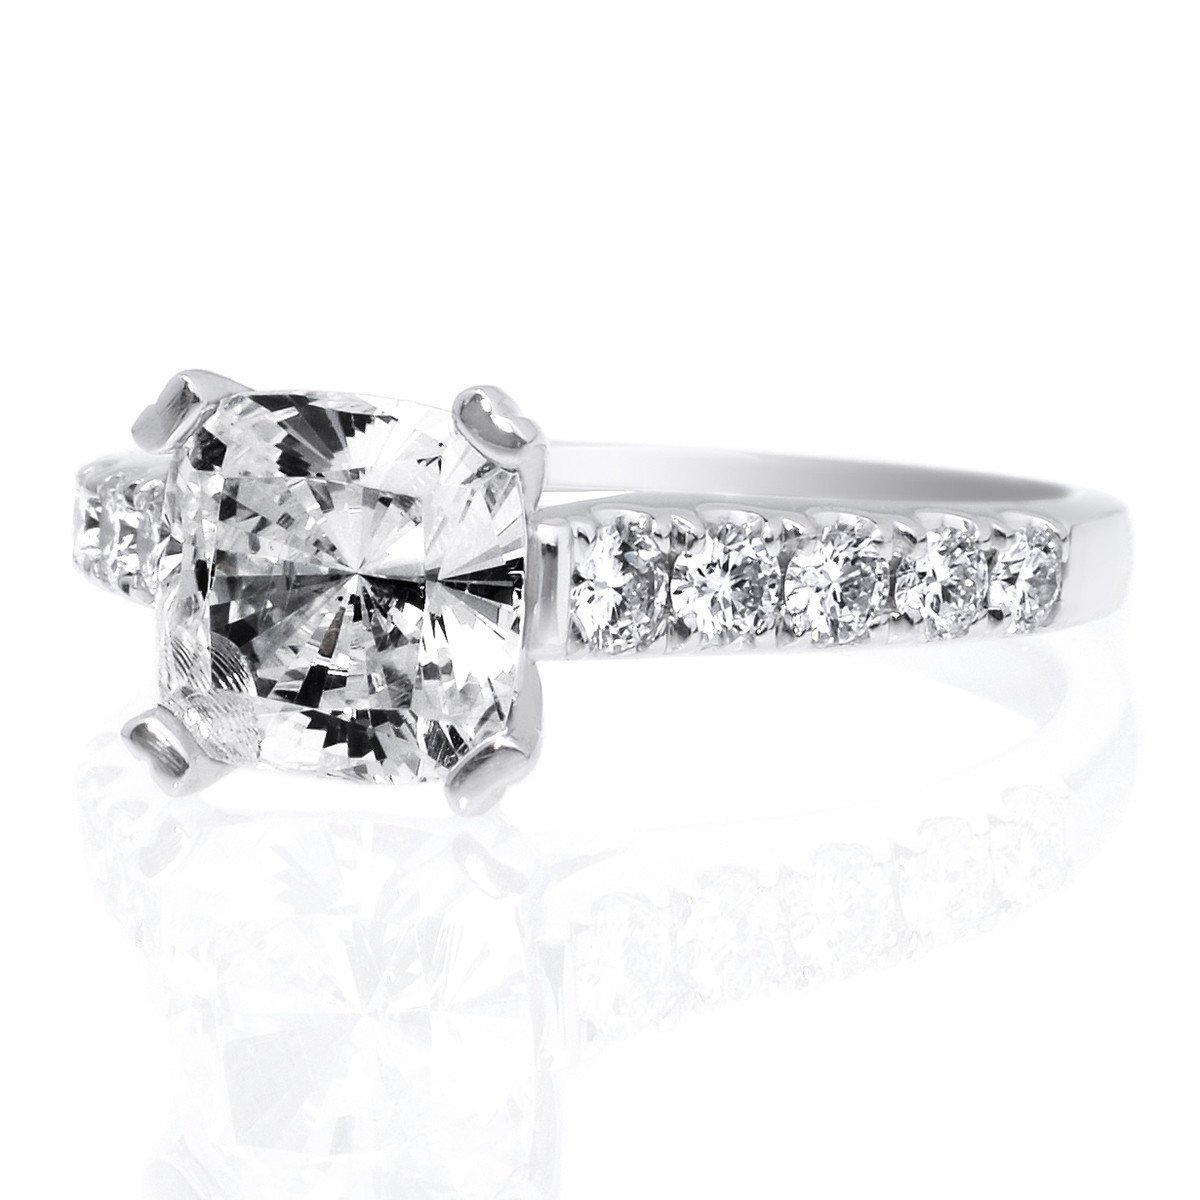 Top 5 Best Engagement Ring Settings: Prong Setting